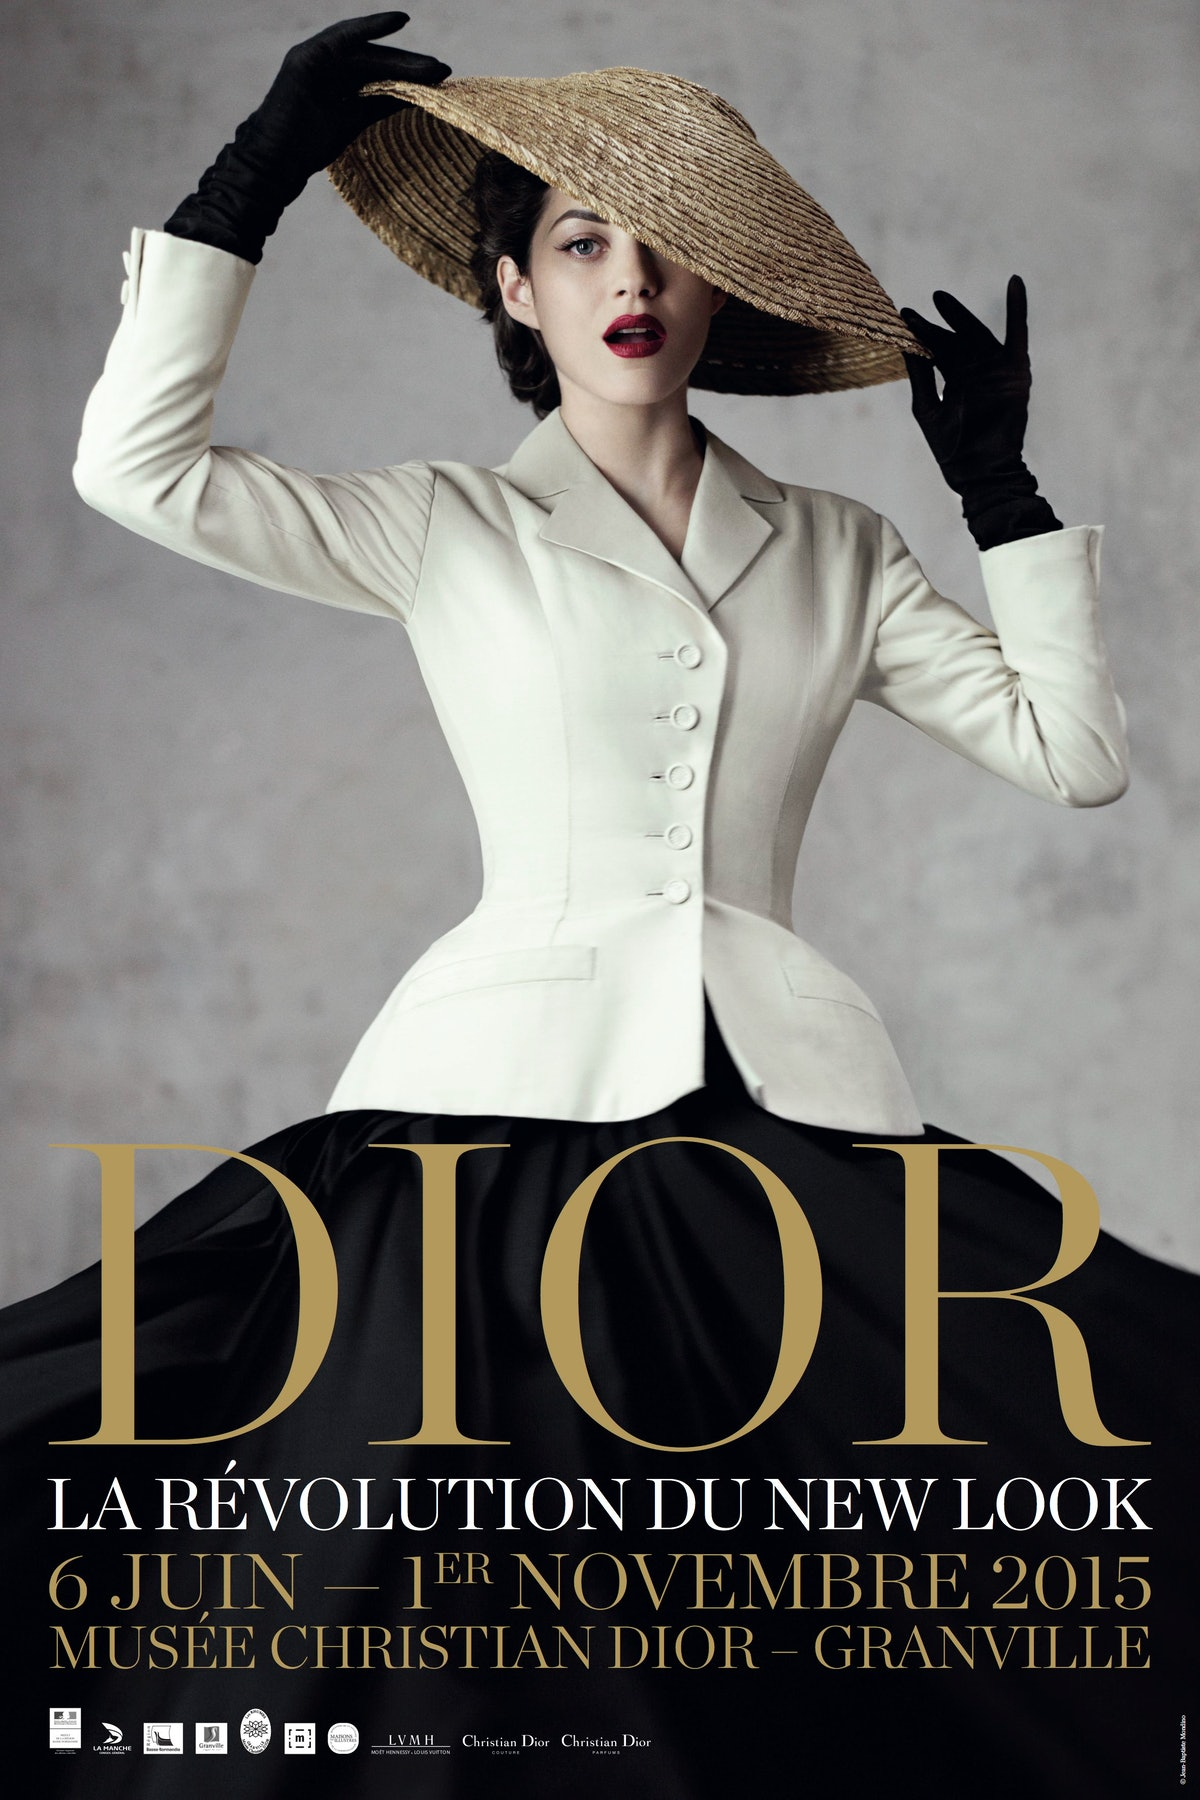 Dior, the New Look Revolution